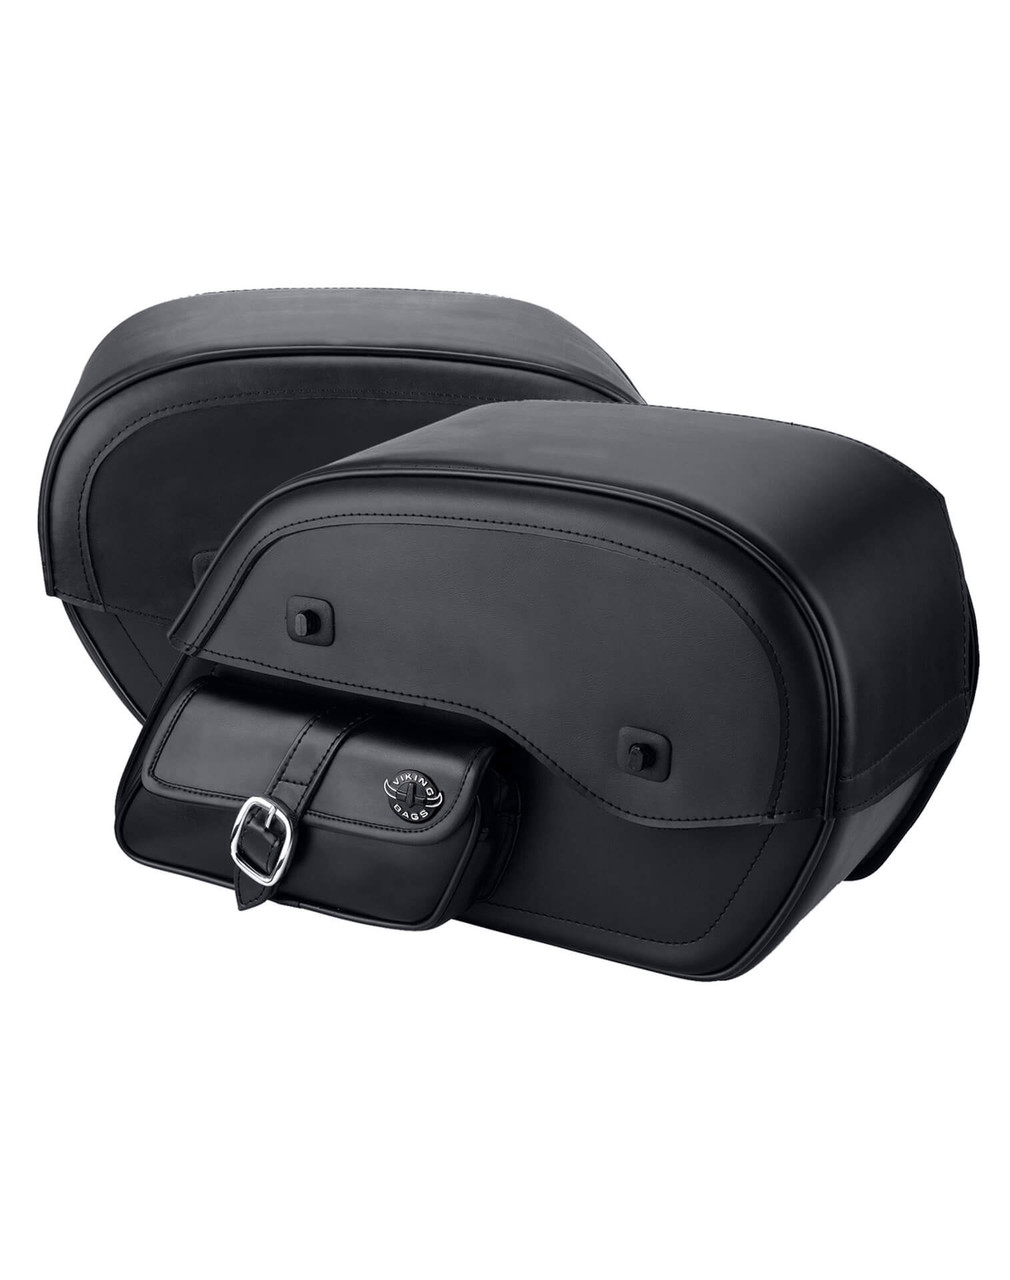 Honda 1500 Valkyrie Interstate SS Side Pocket Motorcycle Saddlebags Both Bags View